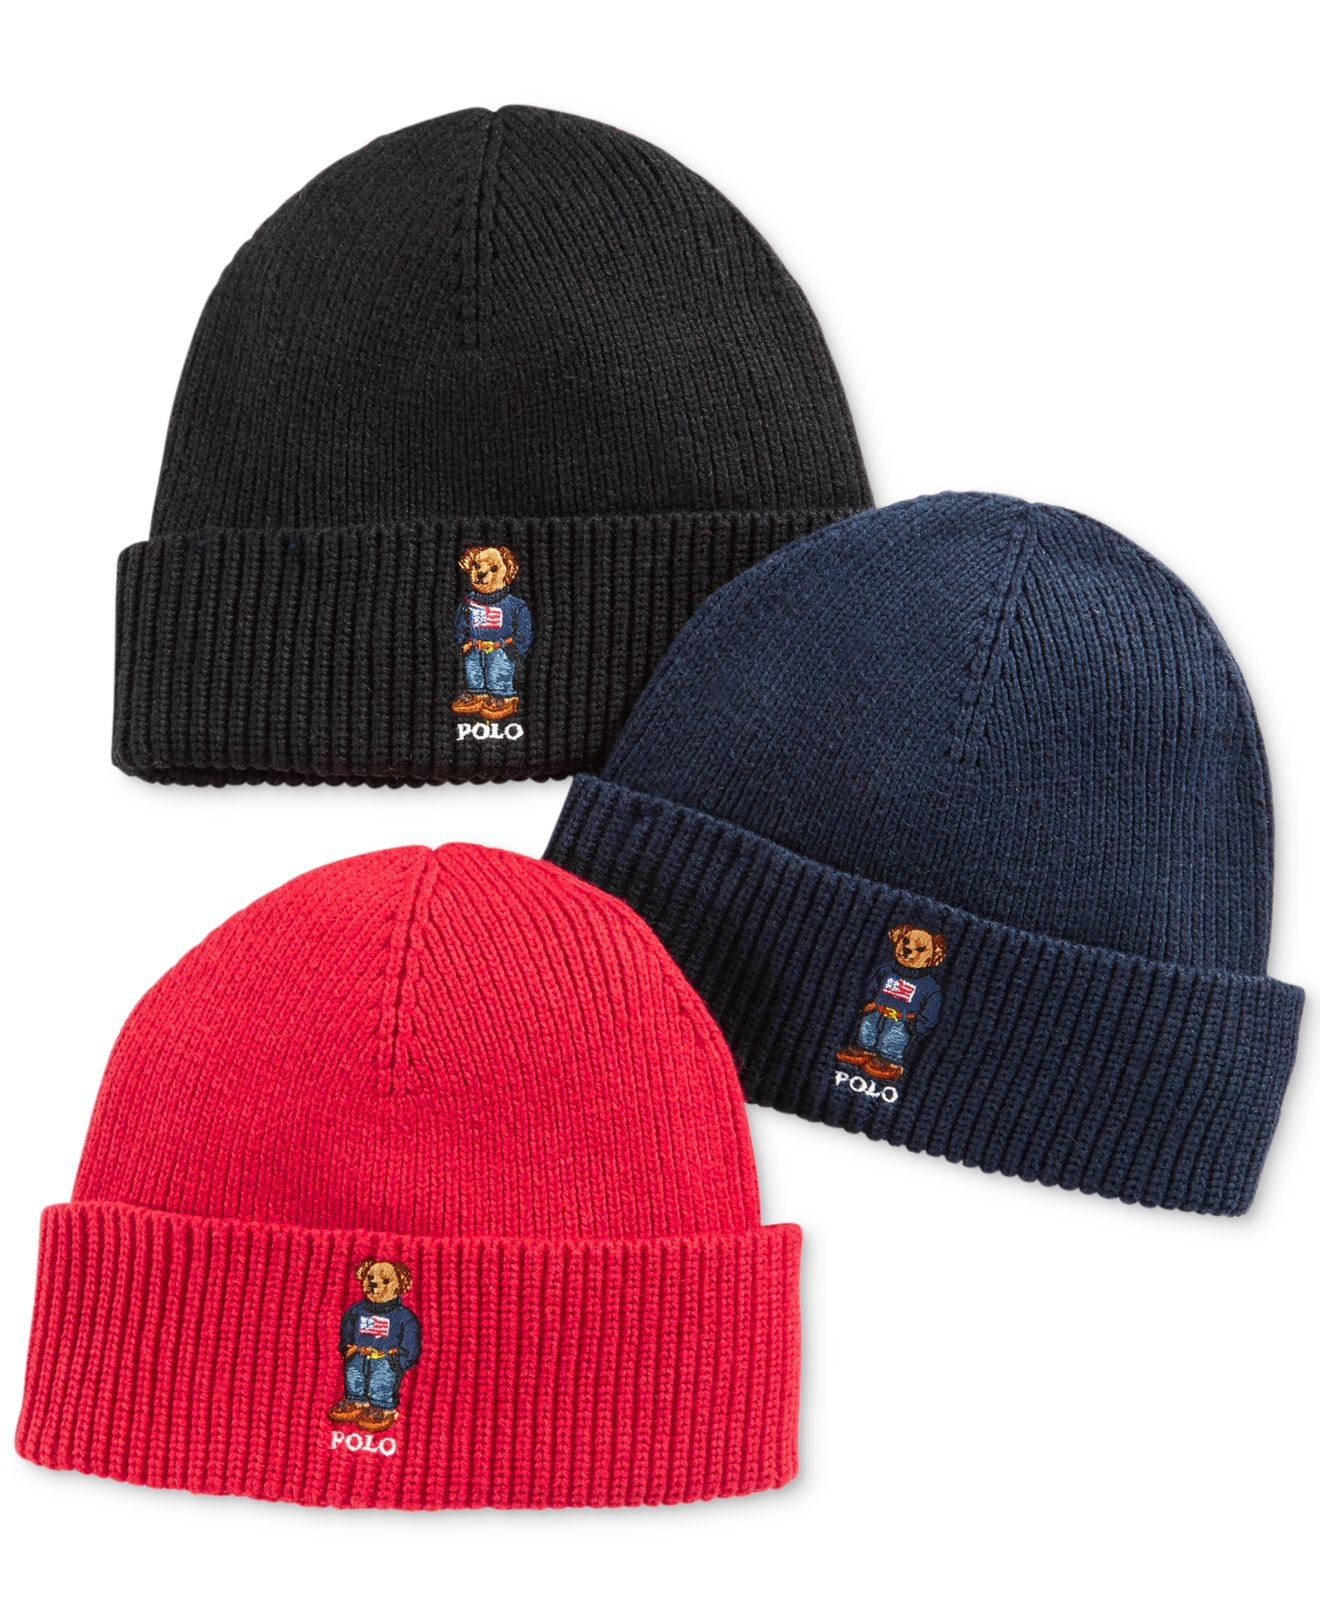 polo ralph lauren ribbed embroidered bear hat in black for. Black Bedroom Furniture Sets. Home Design Ideas